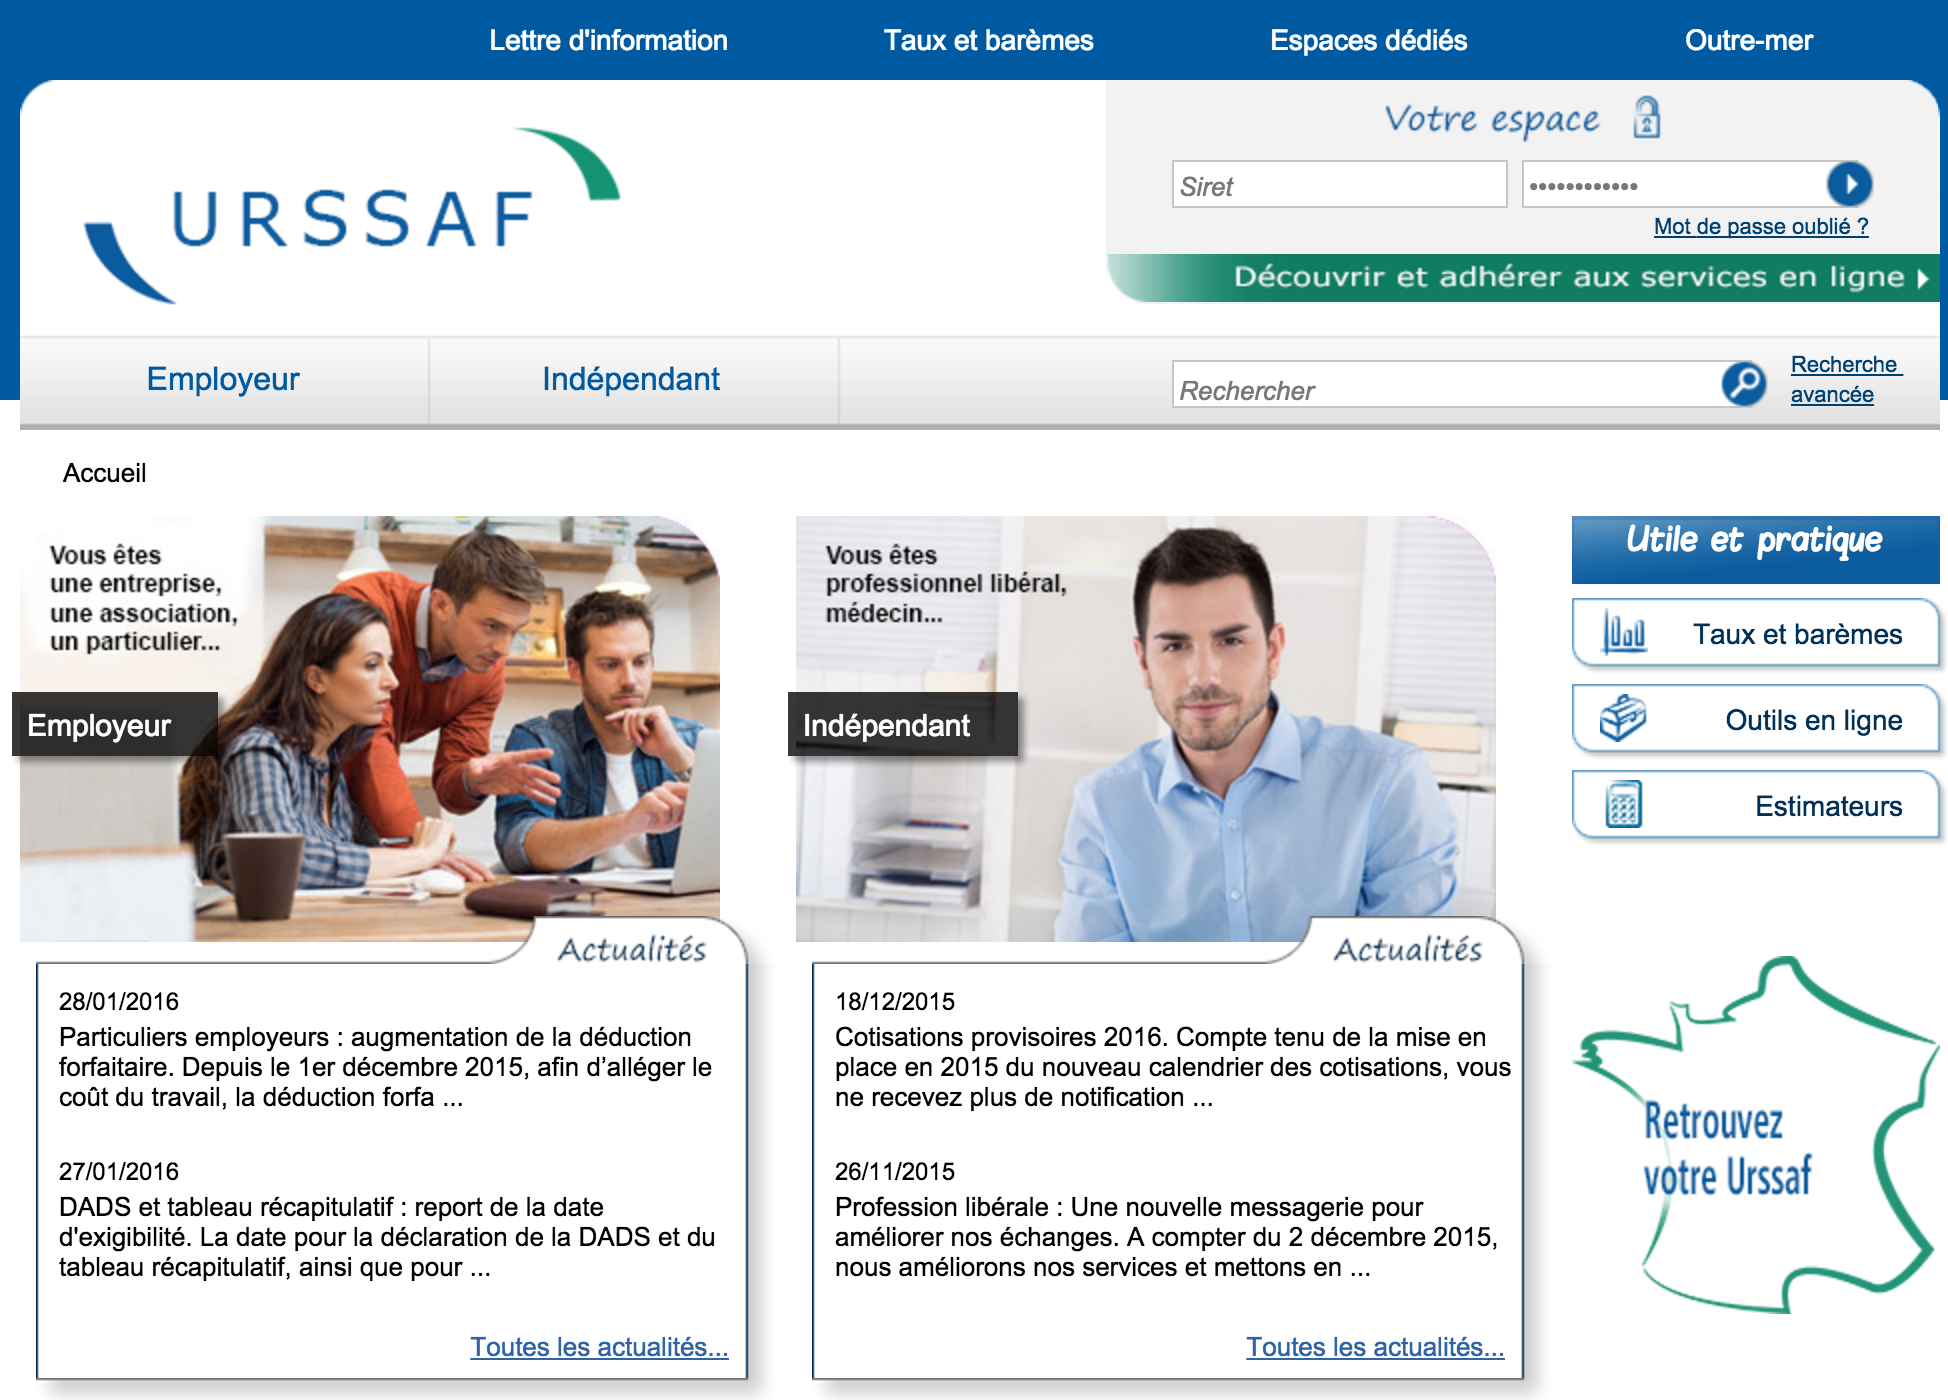 Interface du site officiel de l'Urssaf